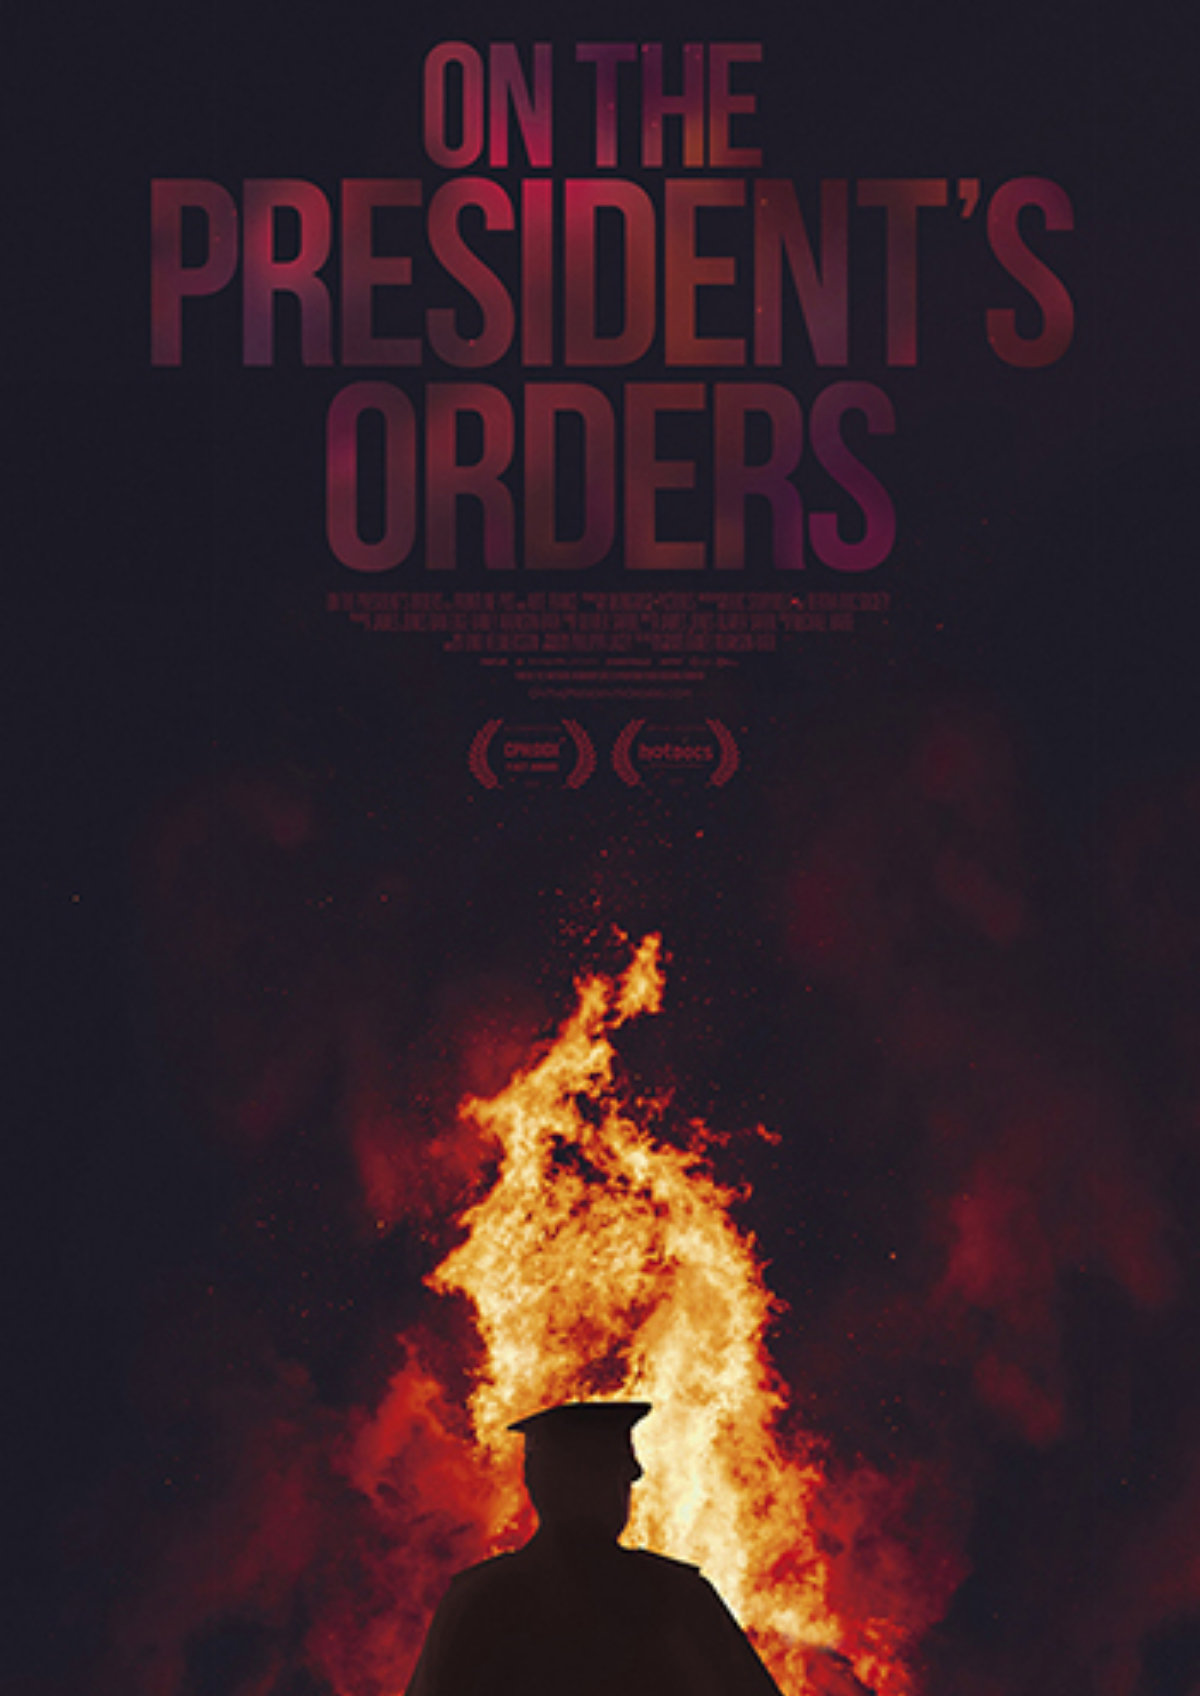 'On the President's Orders' movie poster